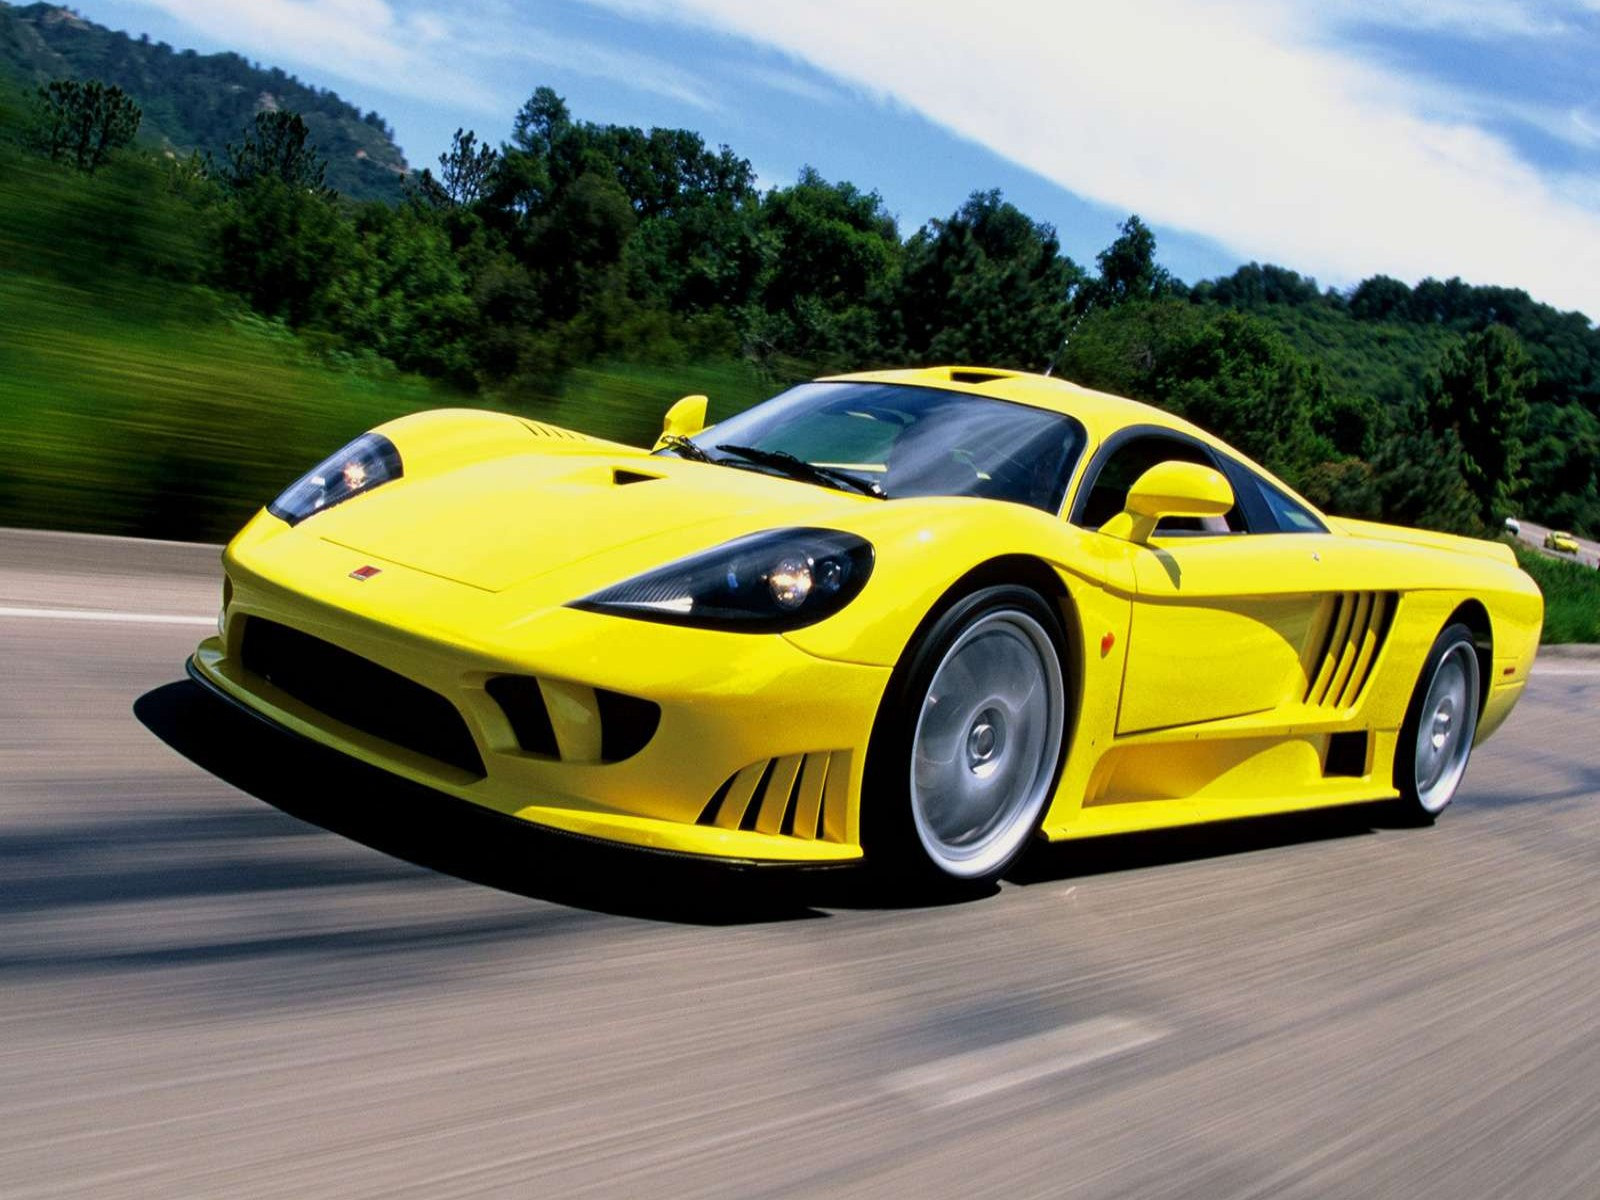 Car And Car Zone: Saleen S7 2002 new cars, car reviews, car pictures and auto industry trends